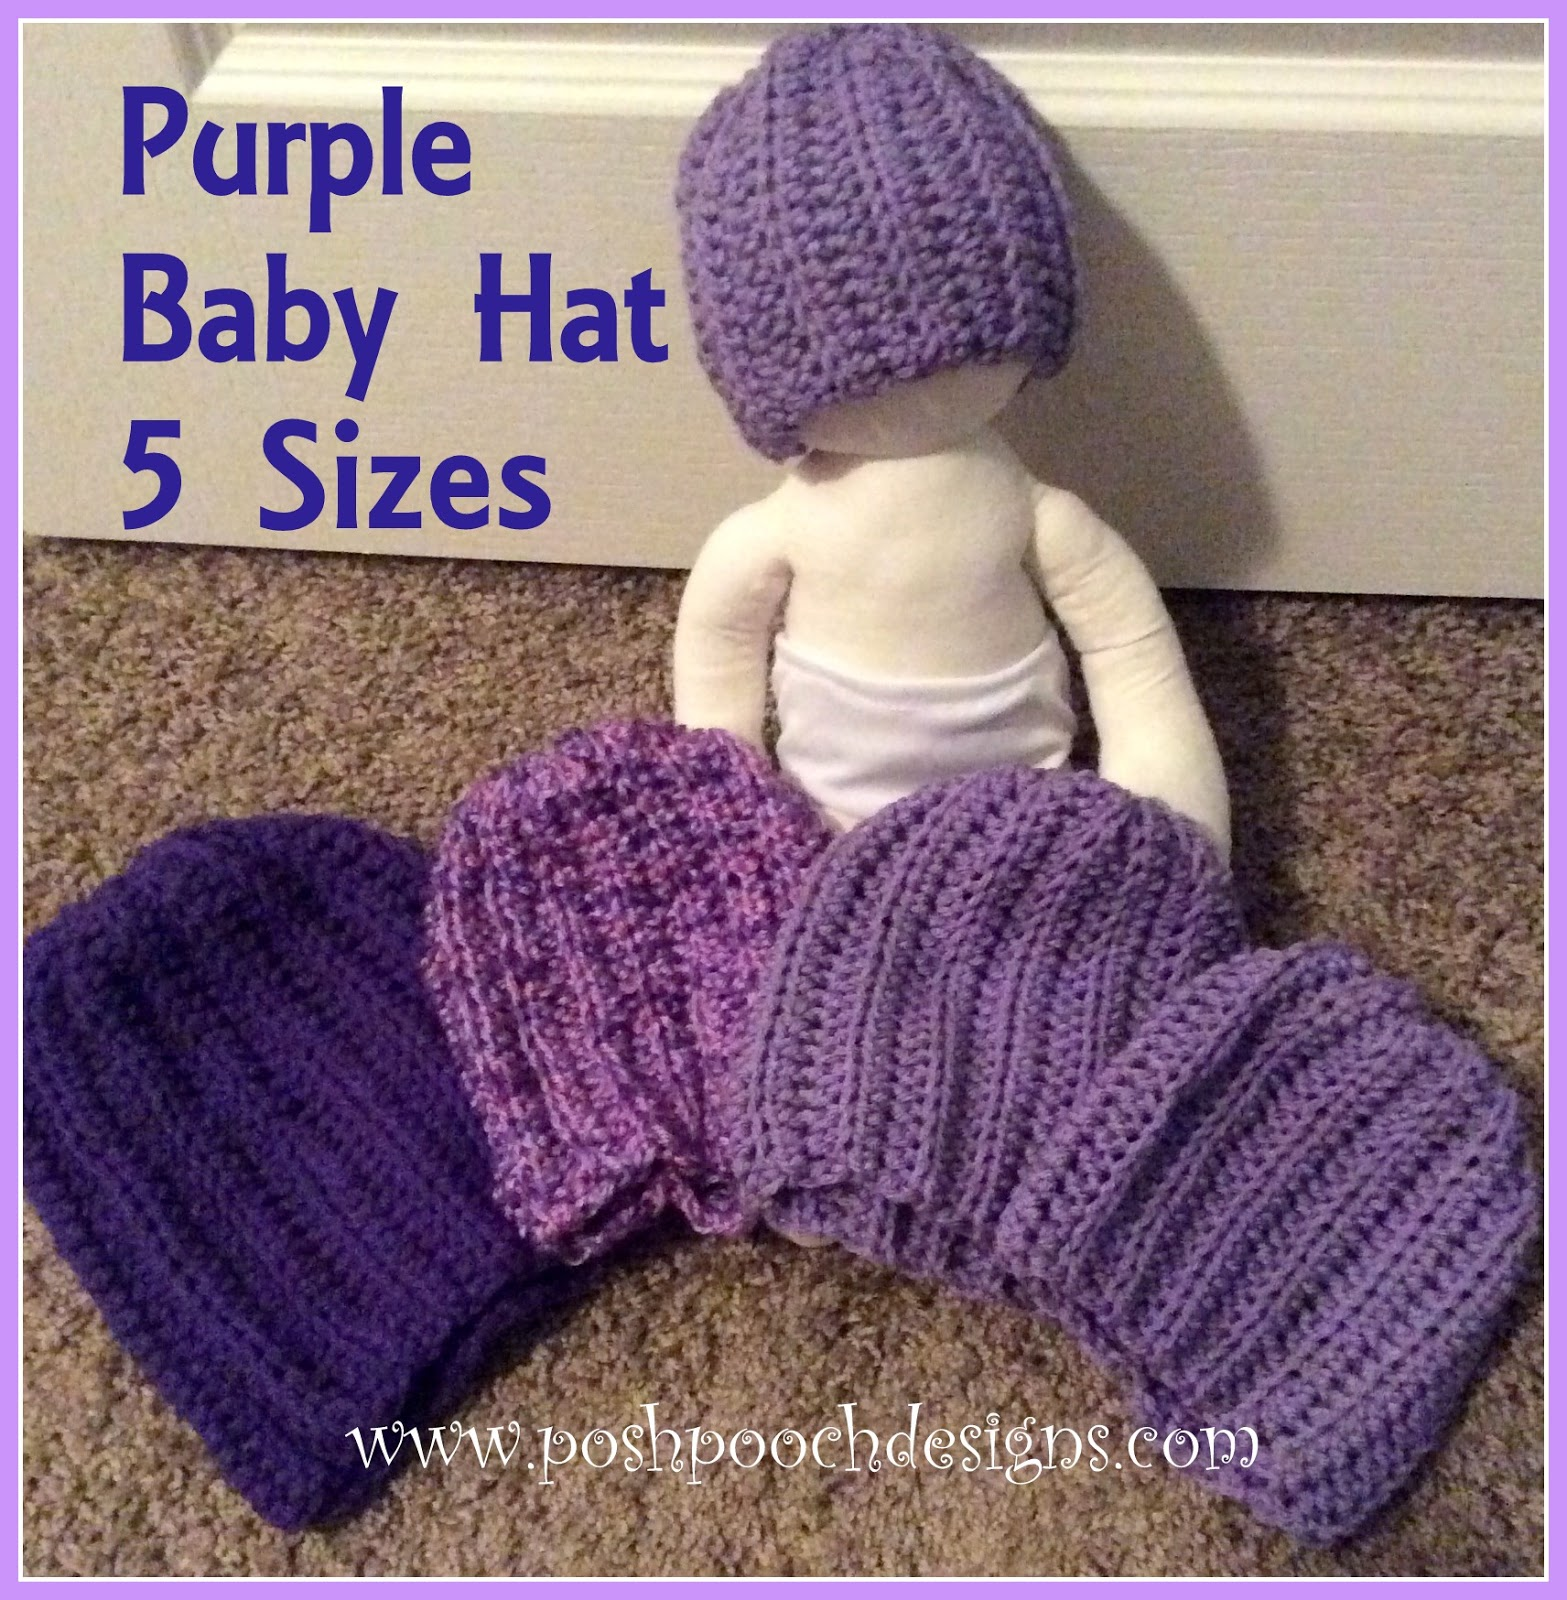 Posh Pooch Designs Dog Clothes: Simple Purple Baby Hat Crochet ...